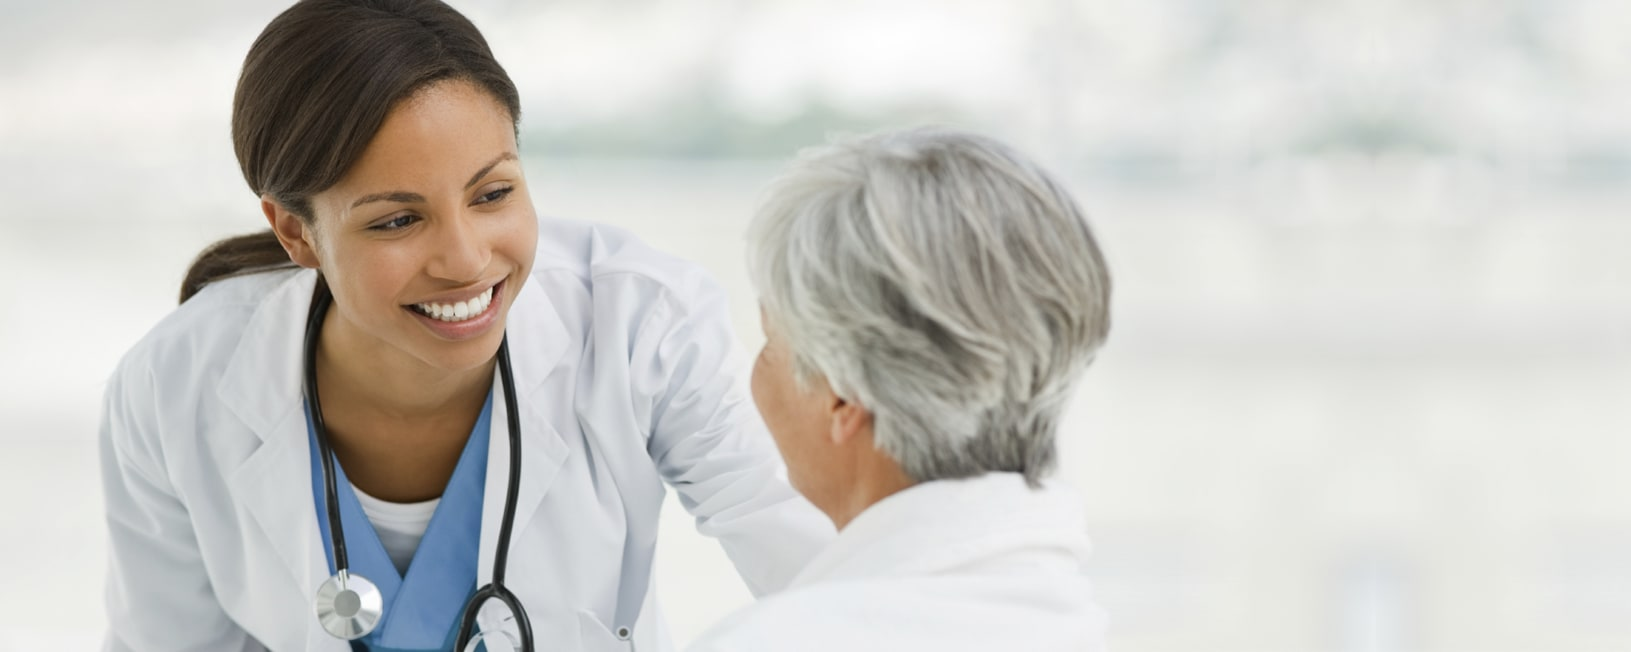 smiling female doctor talking with a female patient